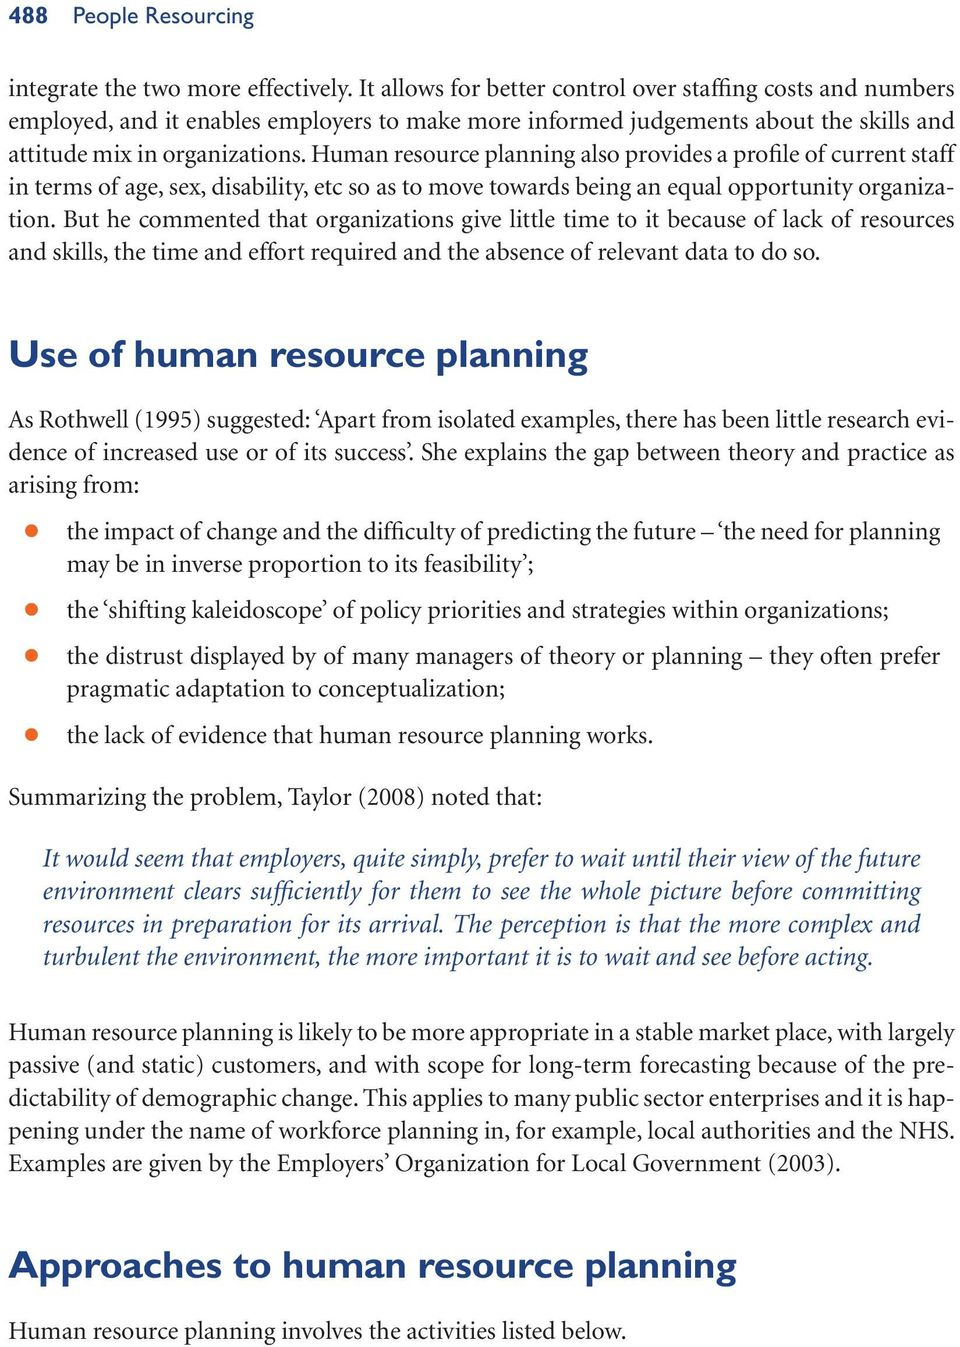 Human resource planning also provides a profile of current staff in terms of age, sex, disability, etc so as to move towards being an equal opportunity organization.